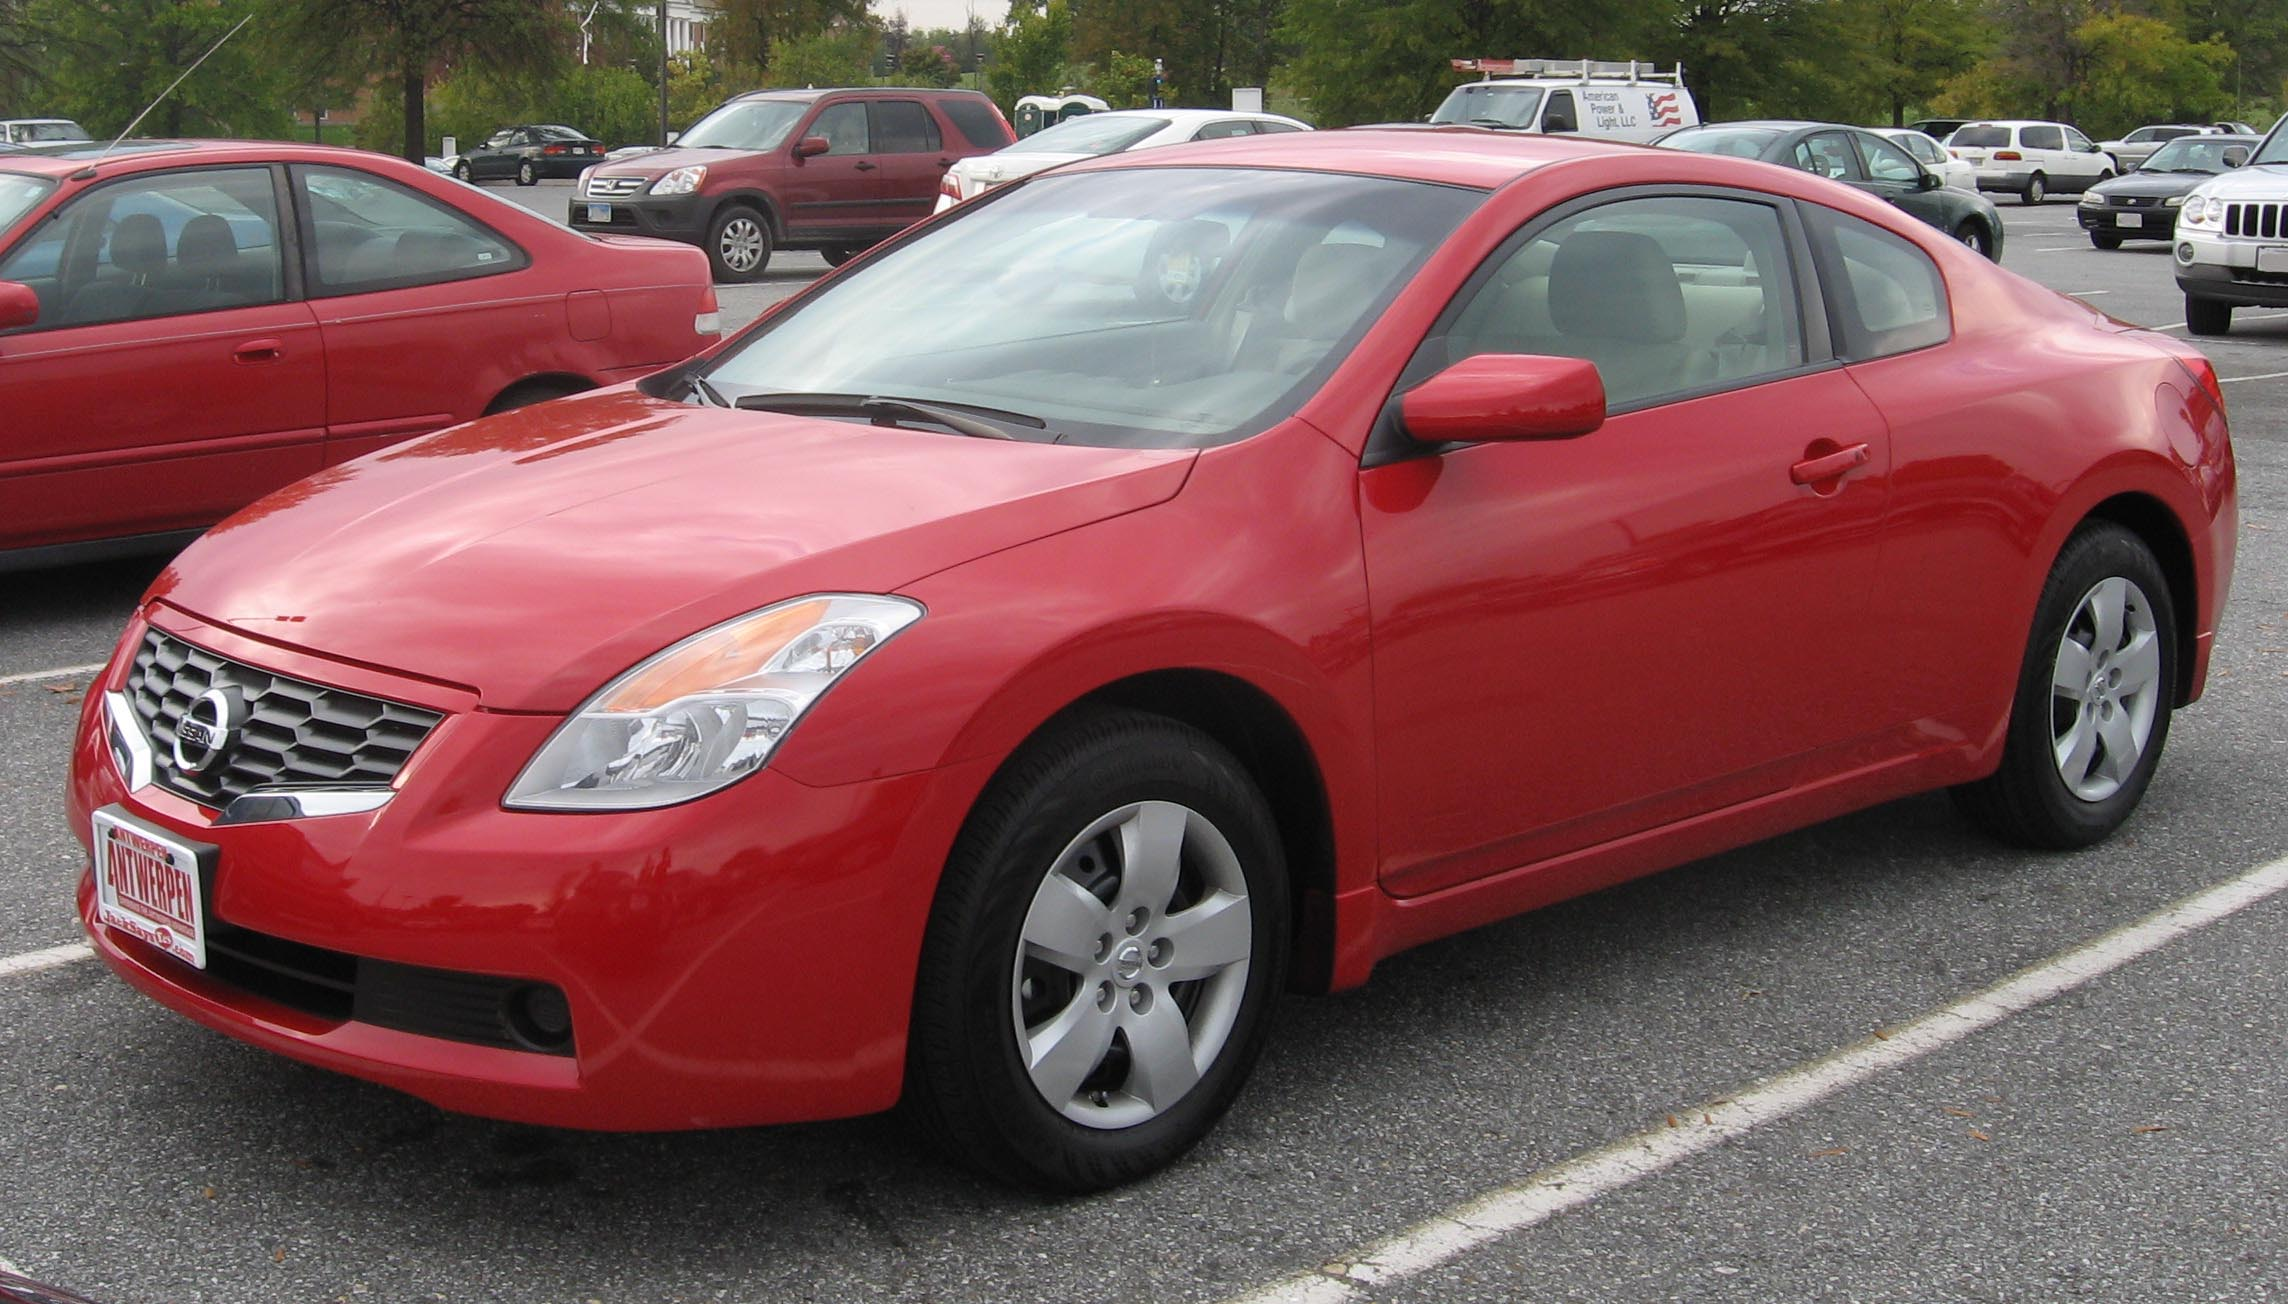 File:2008 Nissan Altima 2.5S Coupe